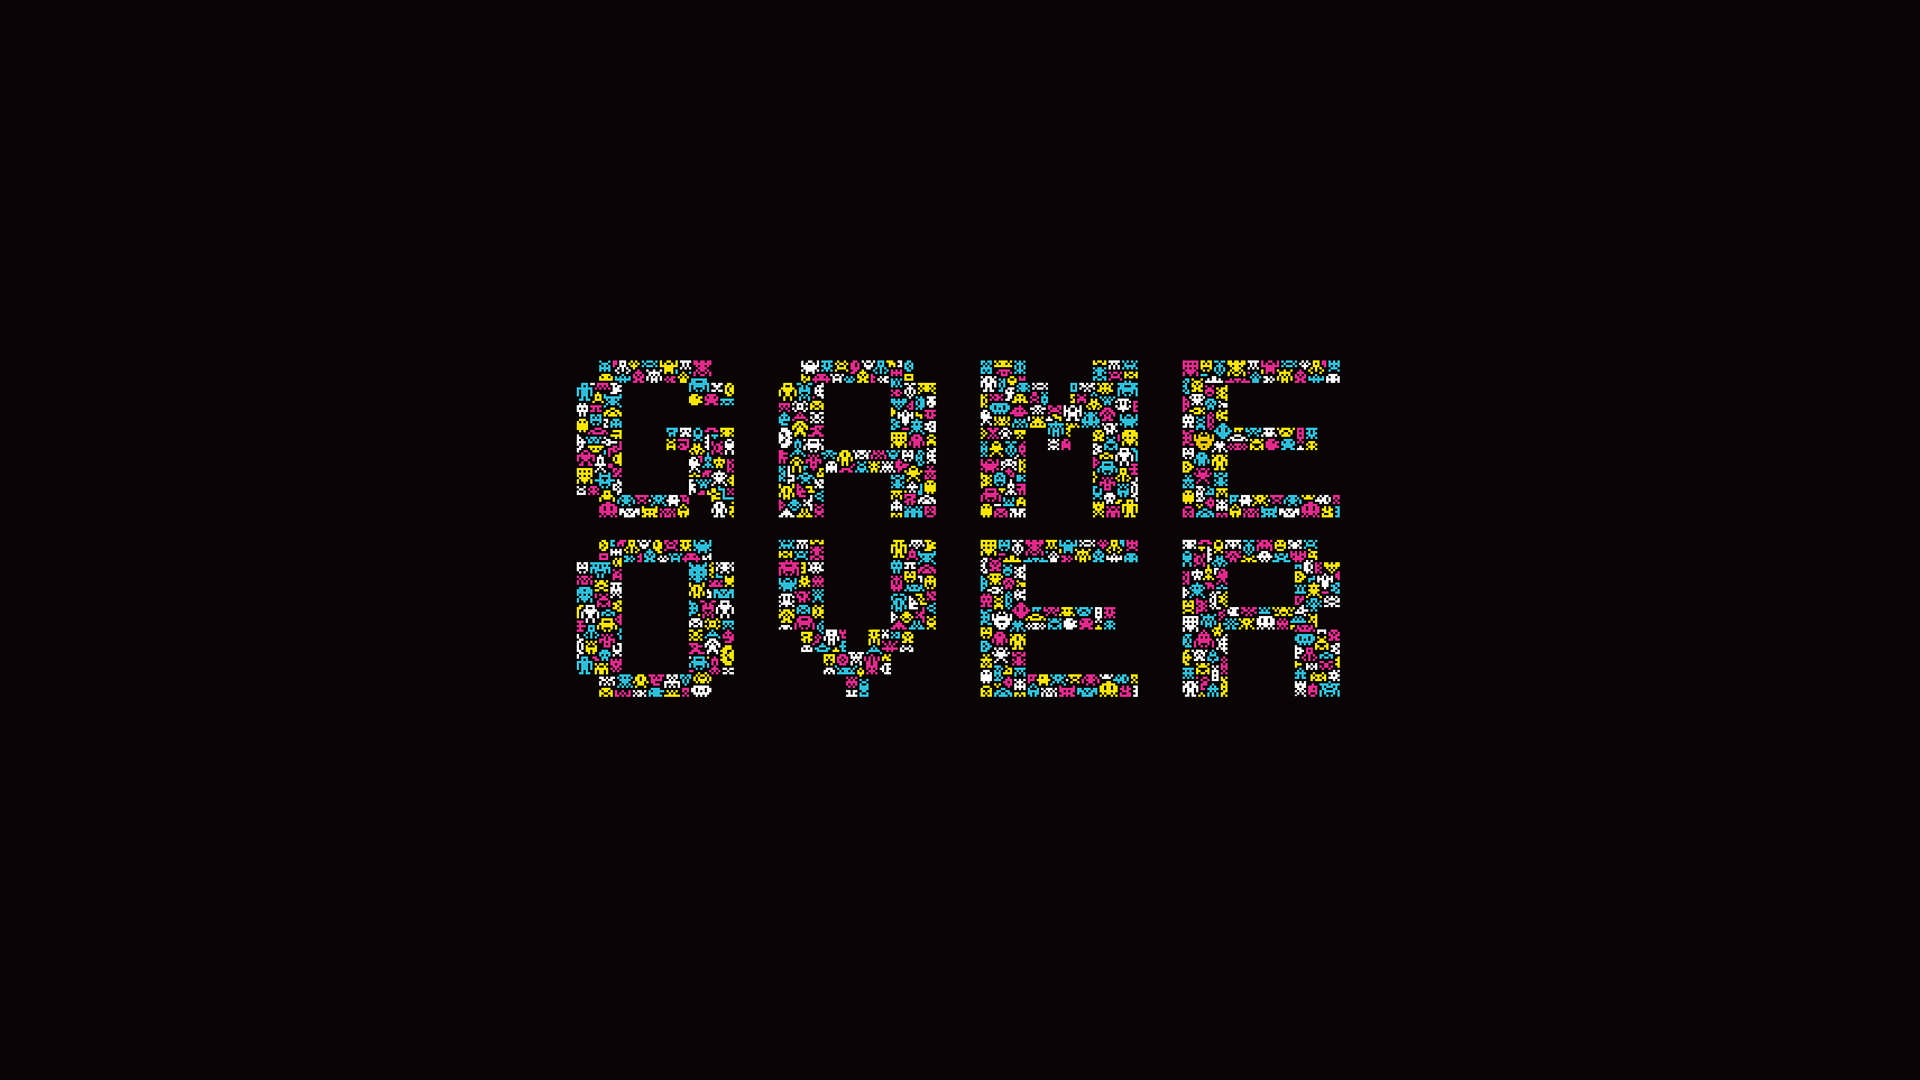 tumblr_static_game-over-space-invaders-dark-background-minimalistic-retro-games-simple-background-typography-video-games